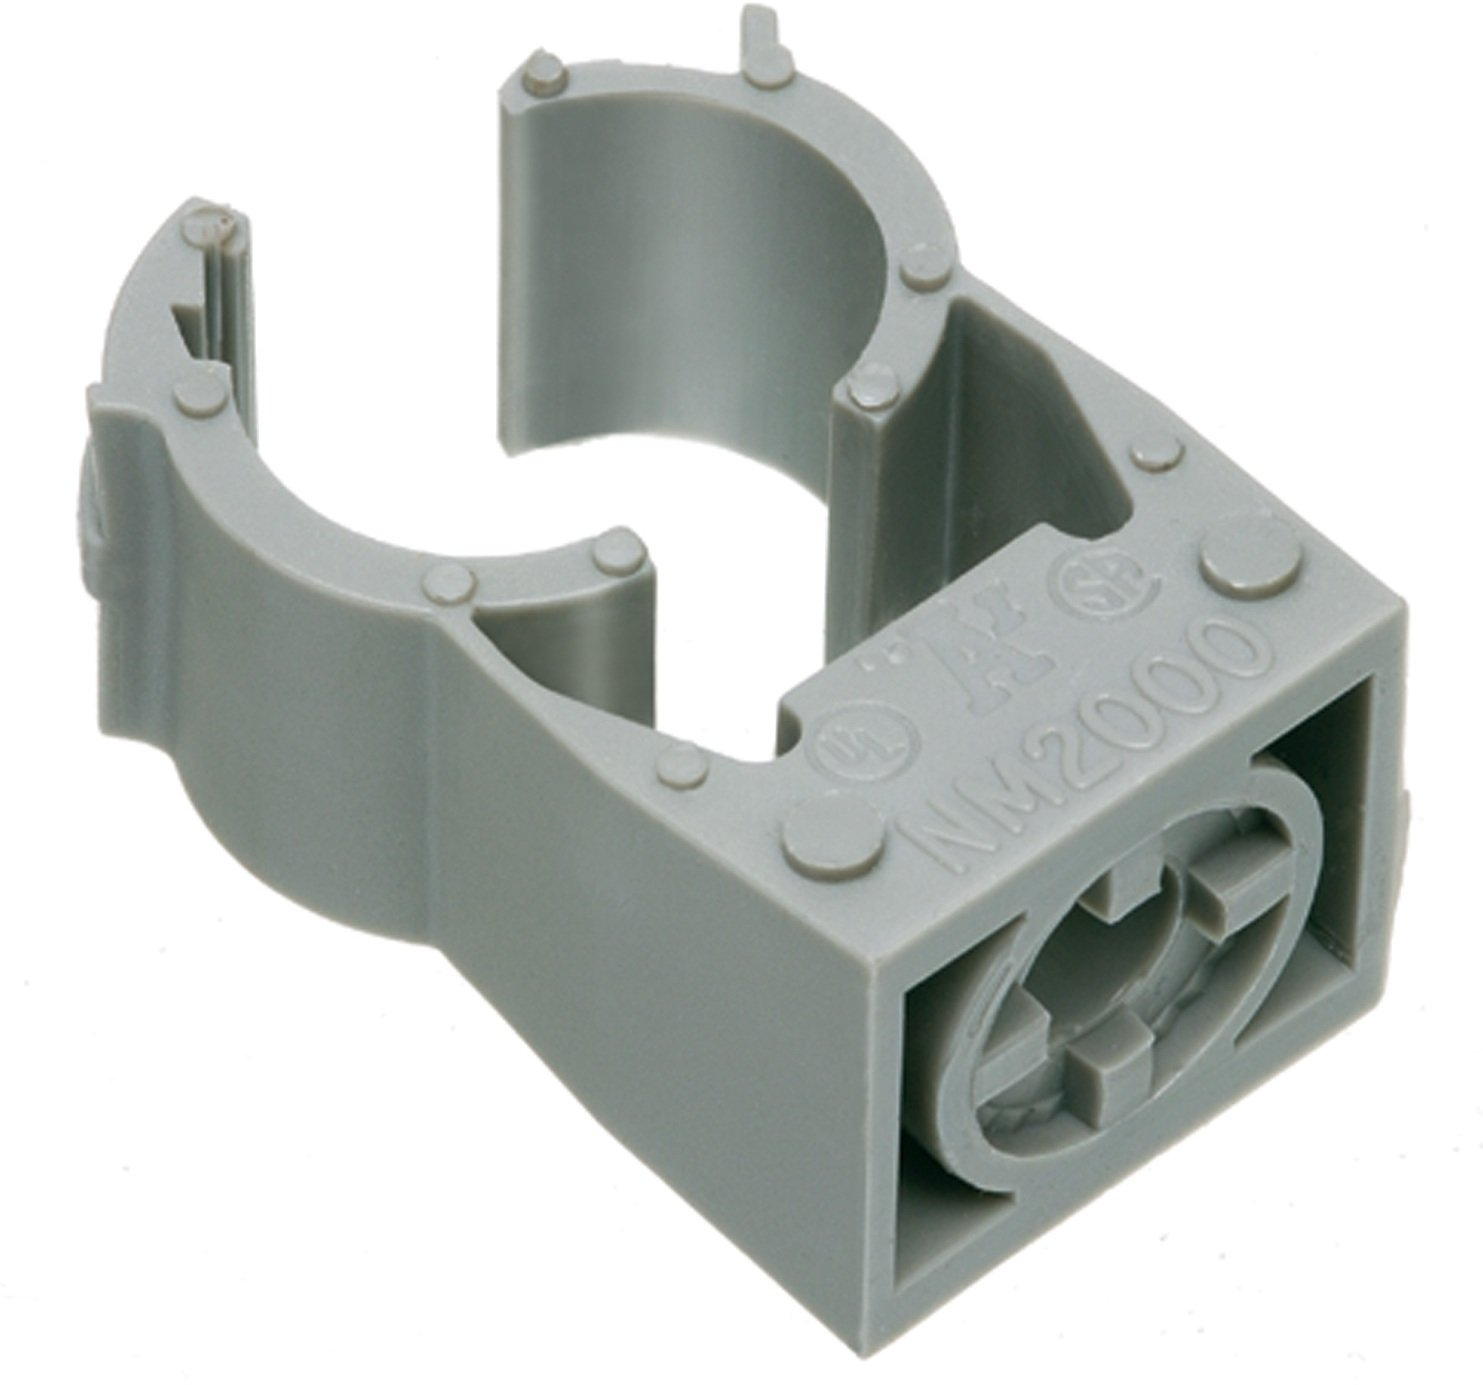 Arlington NM2015-100 Gray One-Piece Non-Metallic UV-Rated Quick-Latch Pipe Hanger, 100-Pack, 3/4-Inch RIGID